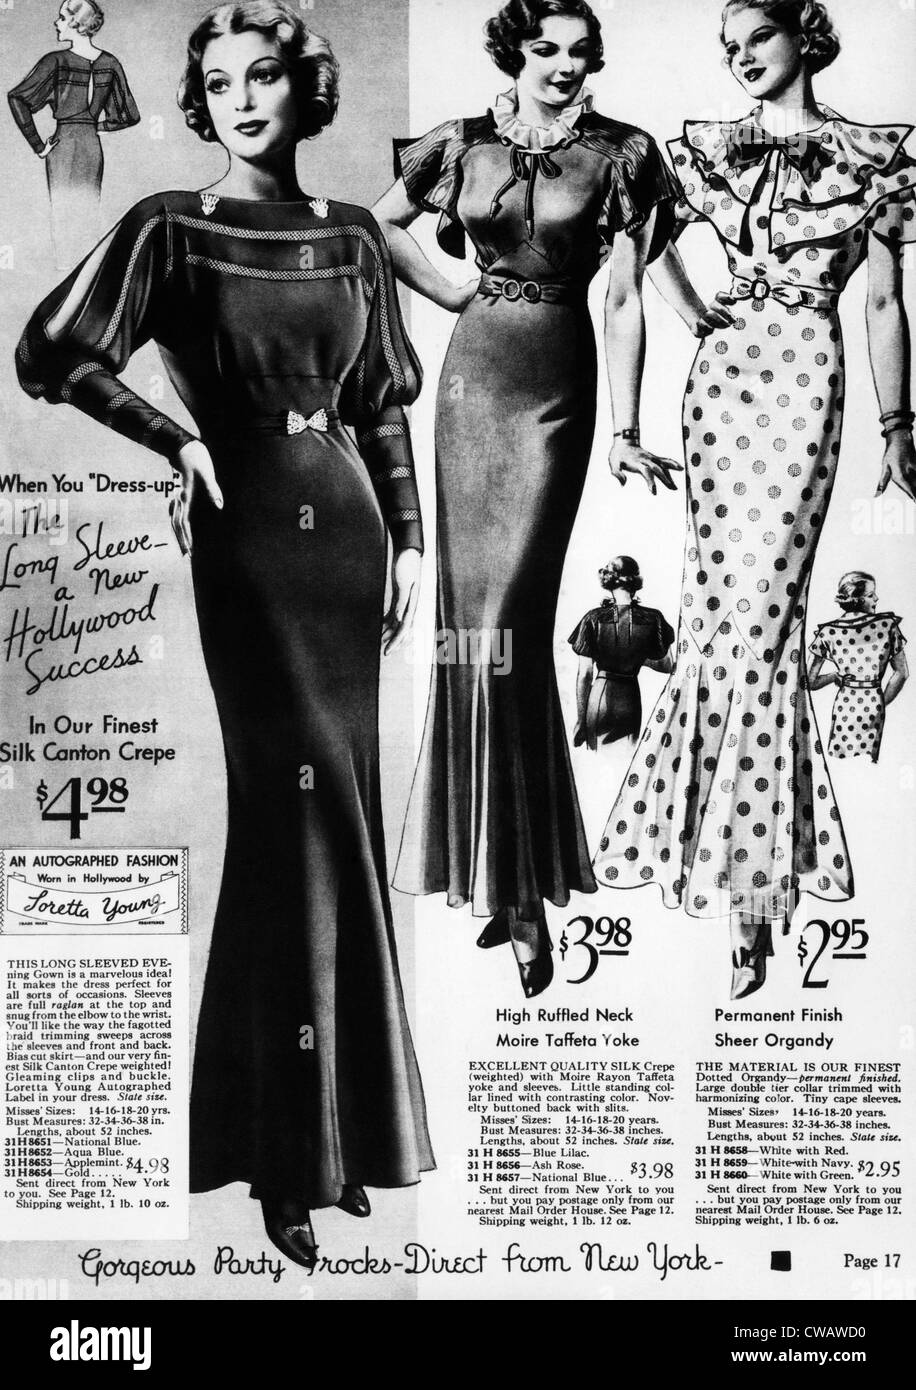 2ae4936f1f2 A page from a 1935 Sears Roebuck catalog offering an  Autographed Fashion   Worn in Hollywood by Loretta Young  dress for sale